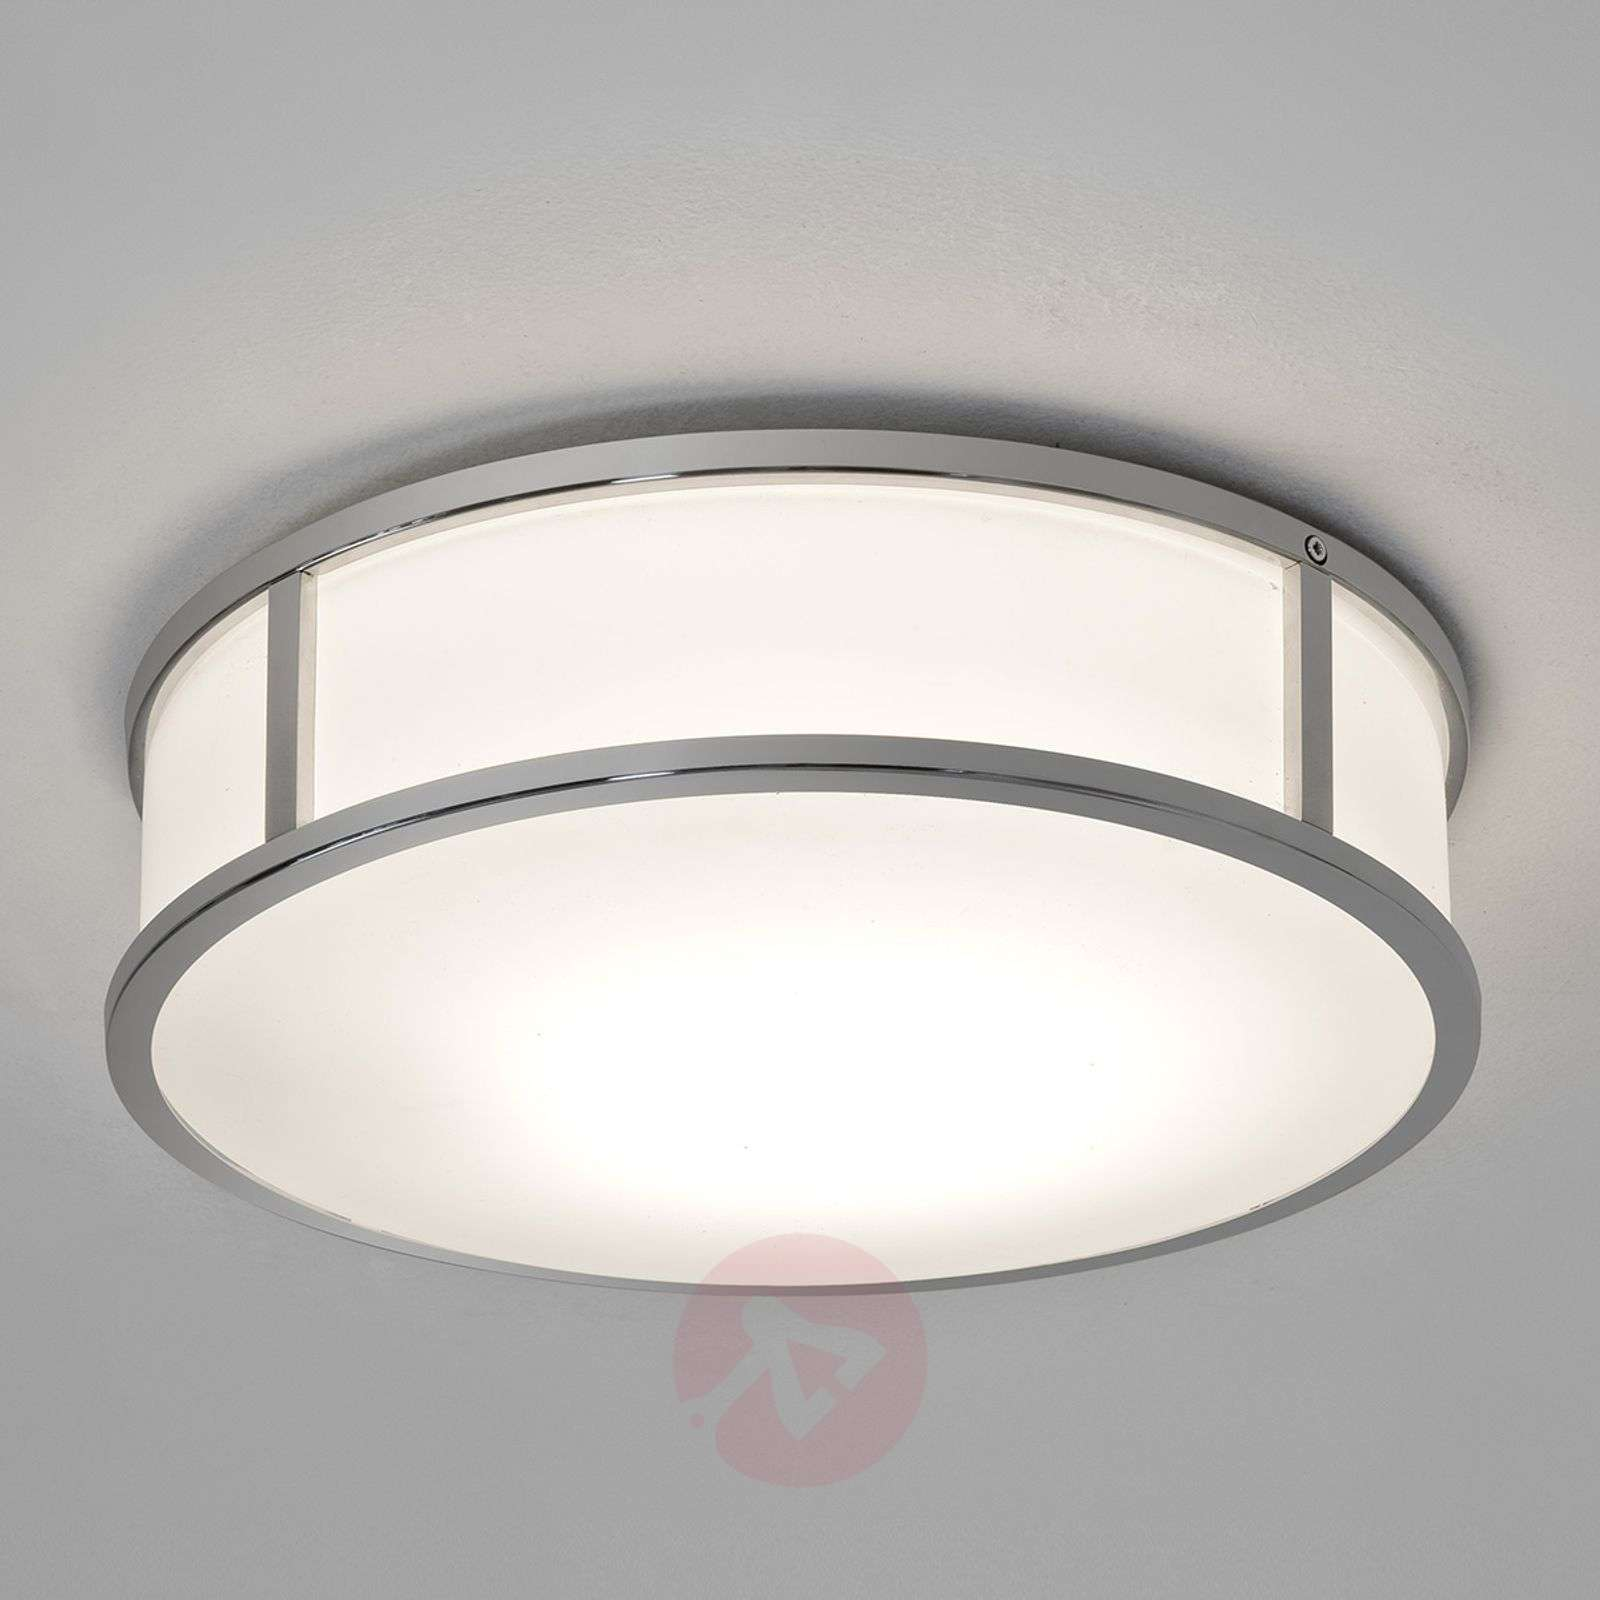 round bathroom light mashiko 300 bathroom ceiling light lights co uk 14253